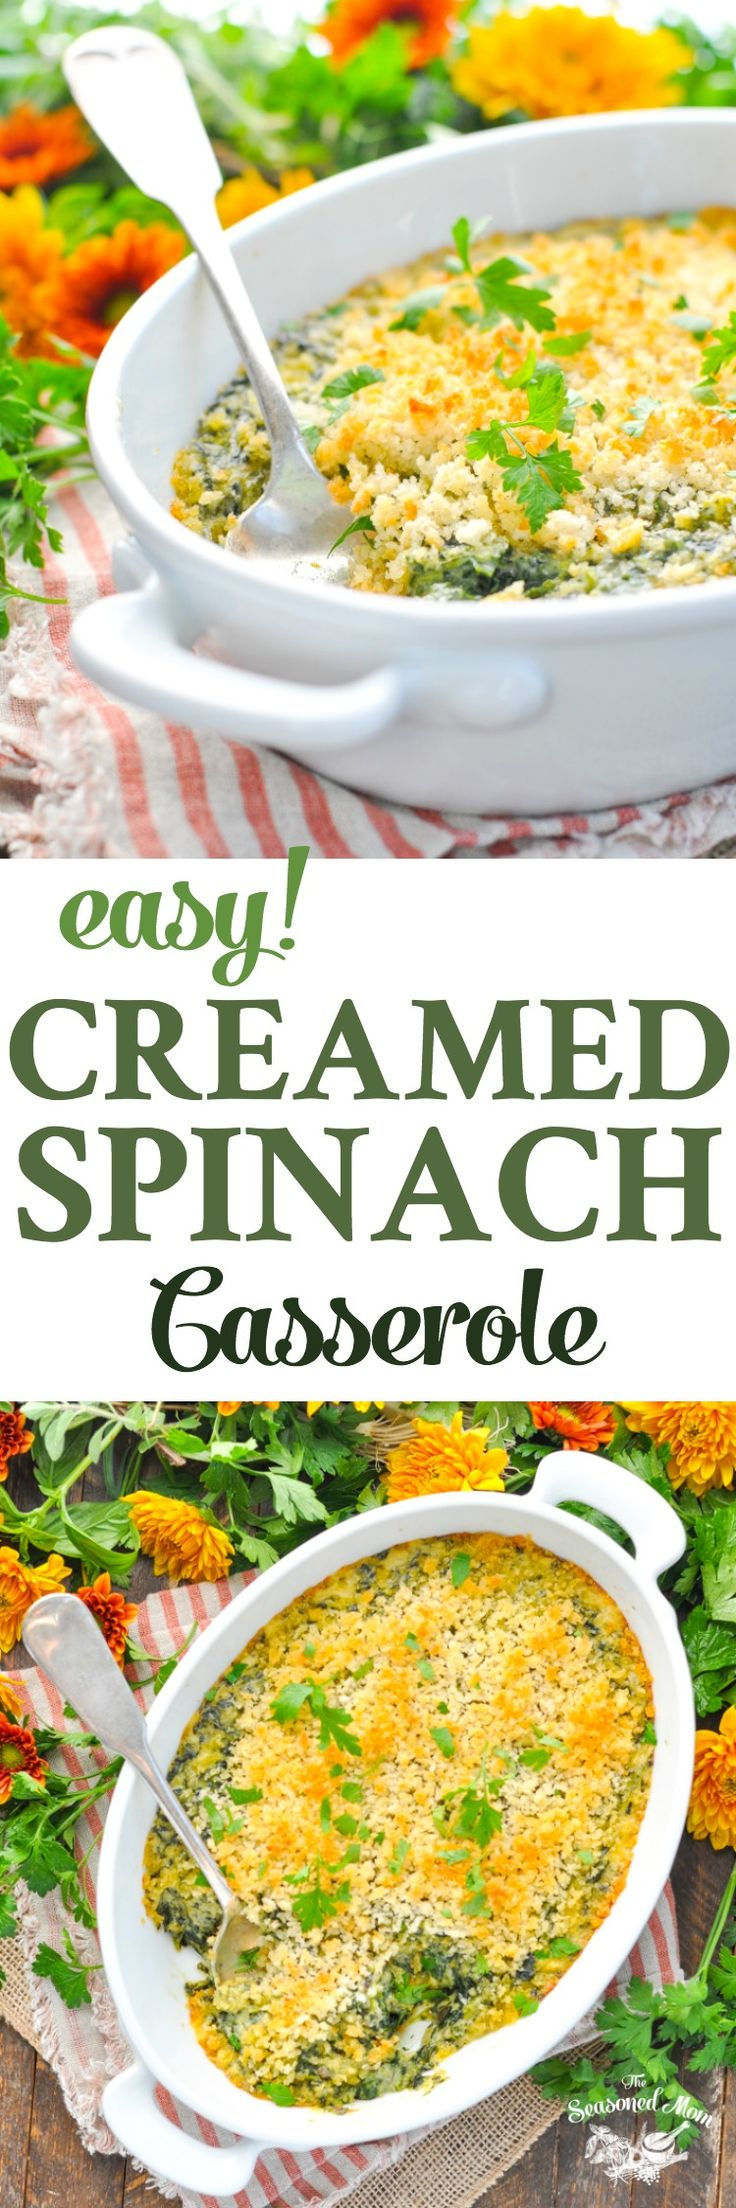 This Easy Creamed Spinach Casserole is a family recipe that's a perfect side dish for Thanksgiving dinner! Sides | Thanksgiving Party | Side Dish Recipes | Vegetarian Recipes #sides #vegetables #veggies #vegetarian